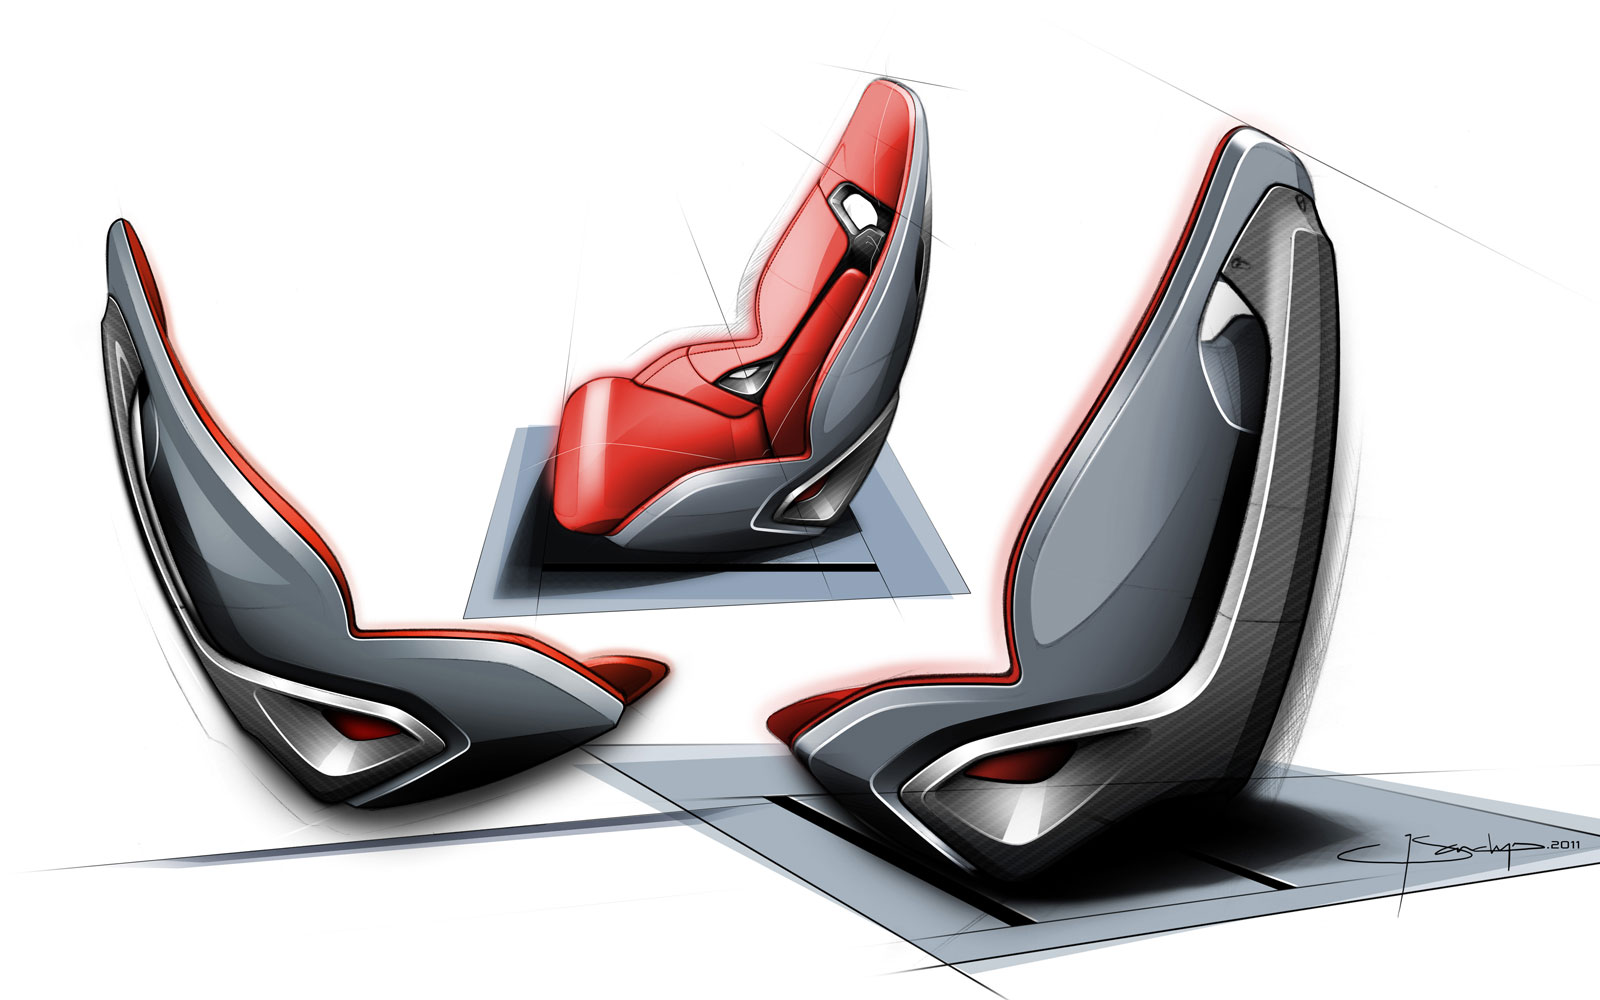 Jaguar C X16 Concept Seat Design Sketch Car Body Design